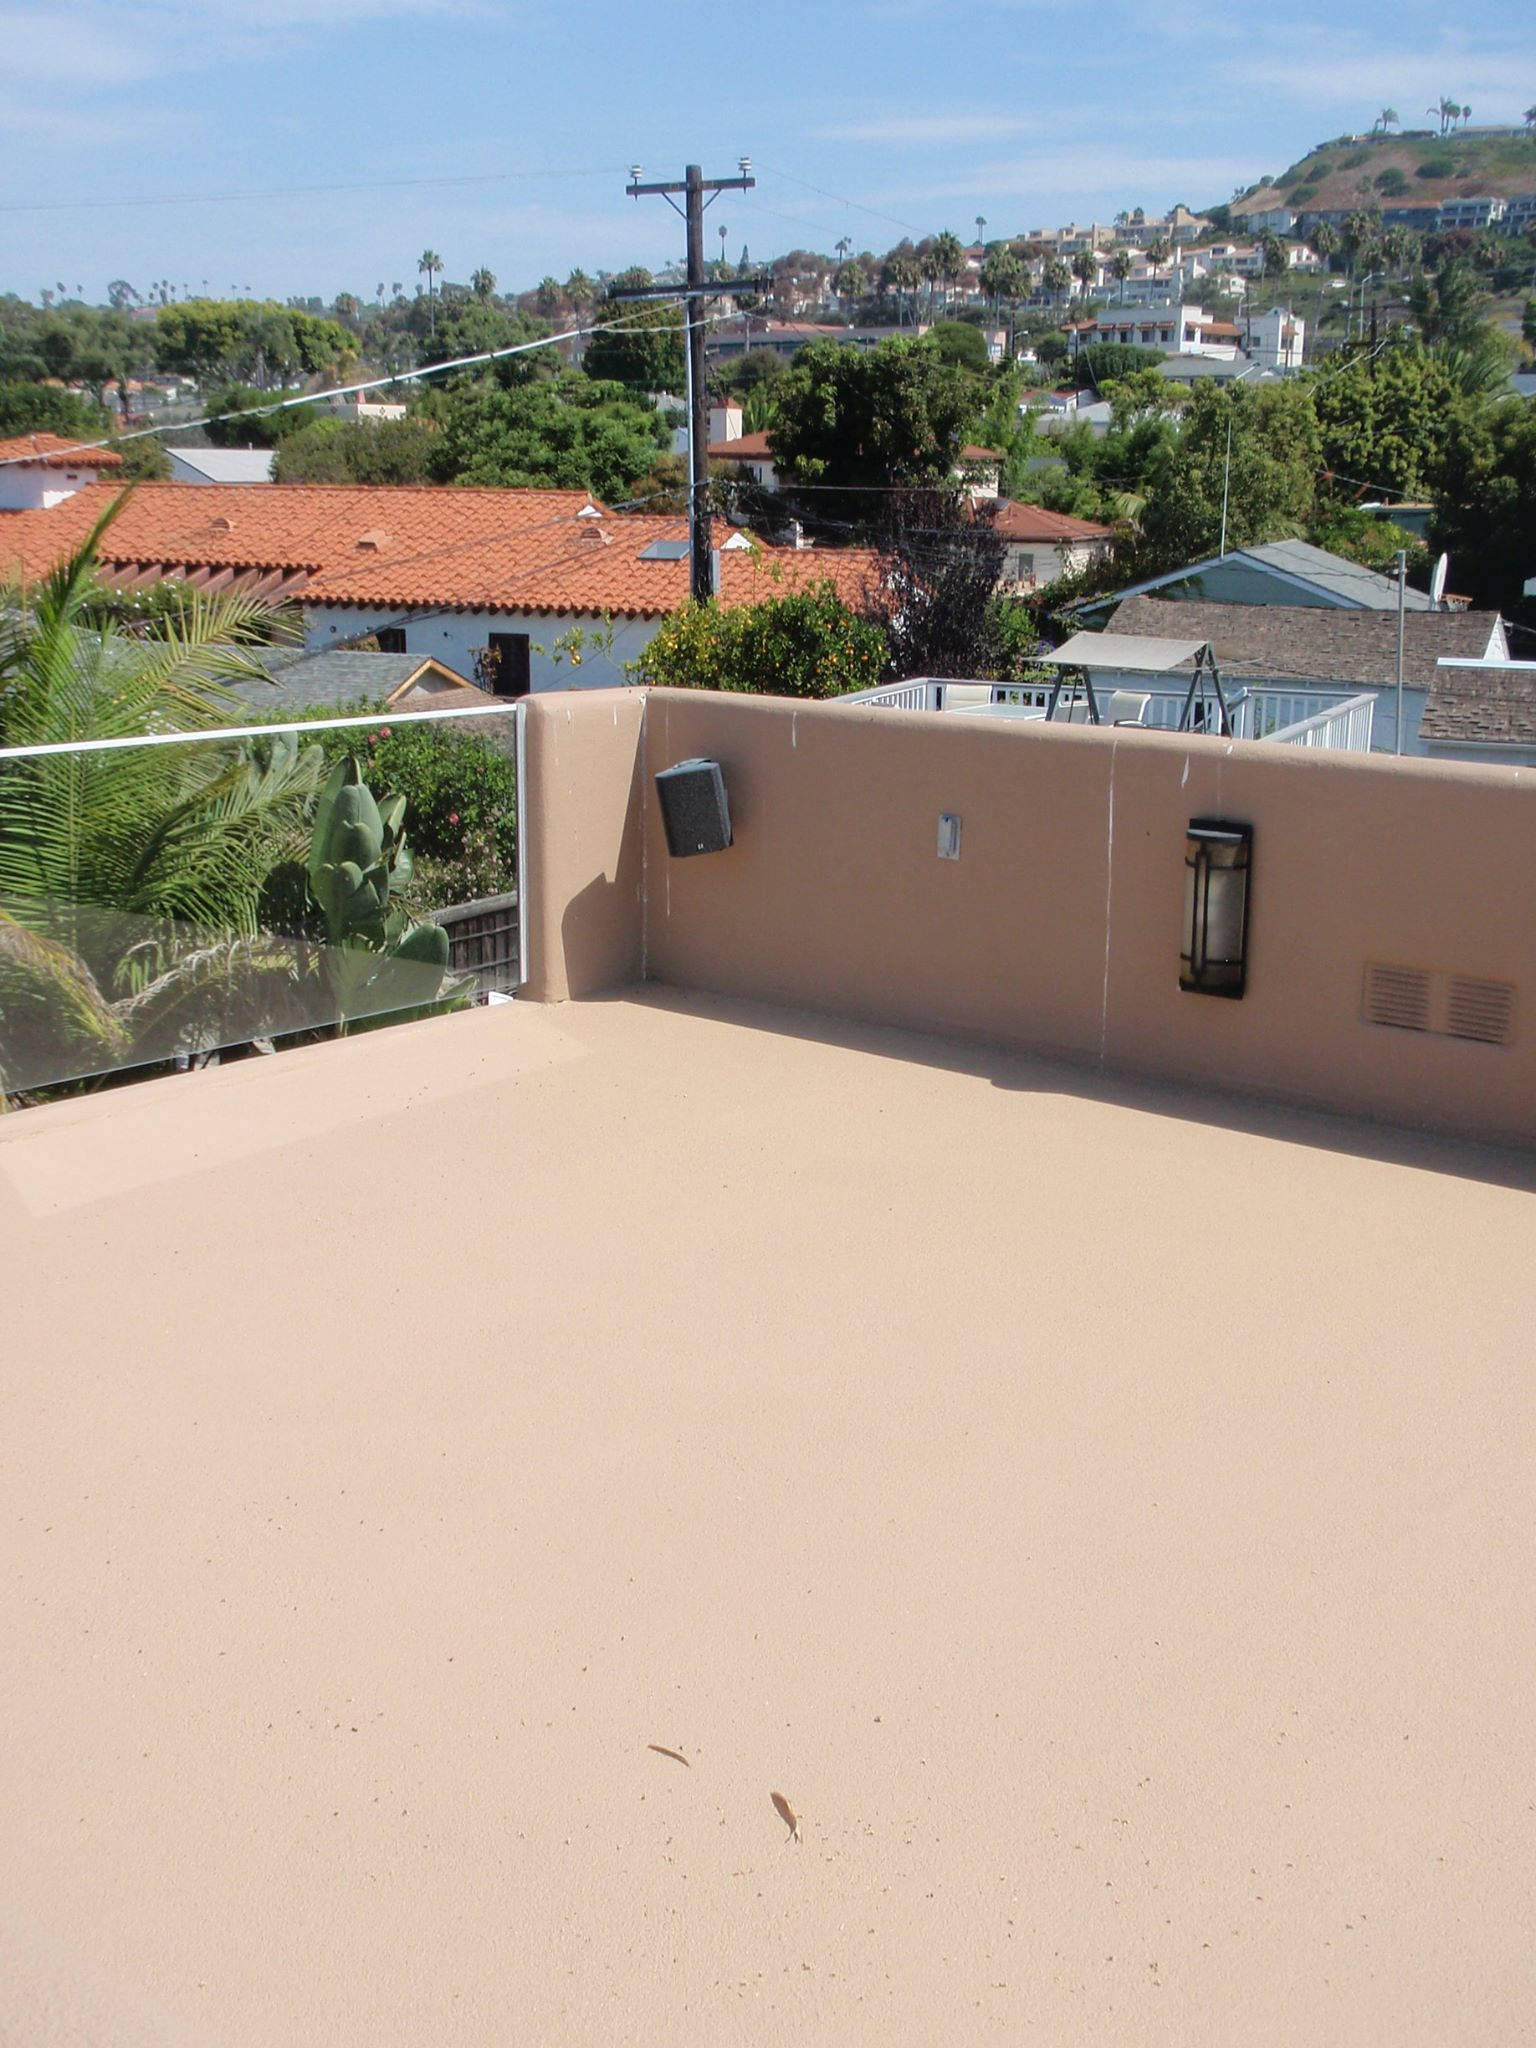 Concrete Deck Resurfacing Job With Desert Crete